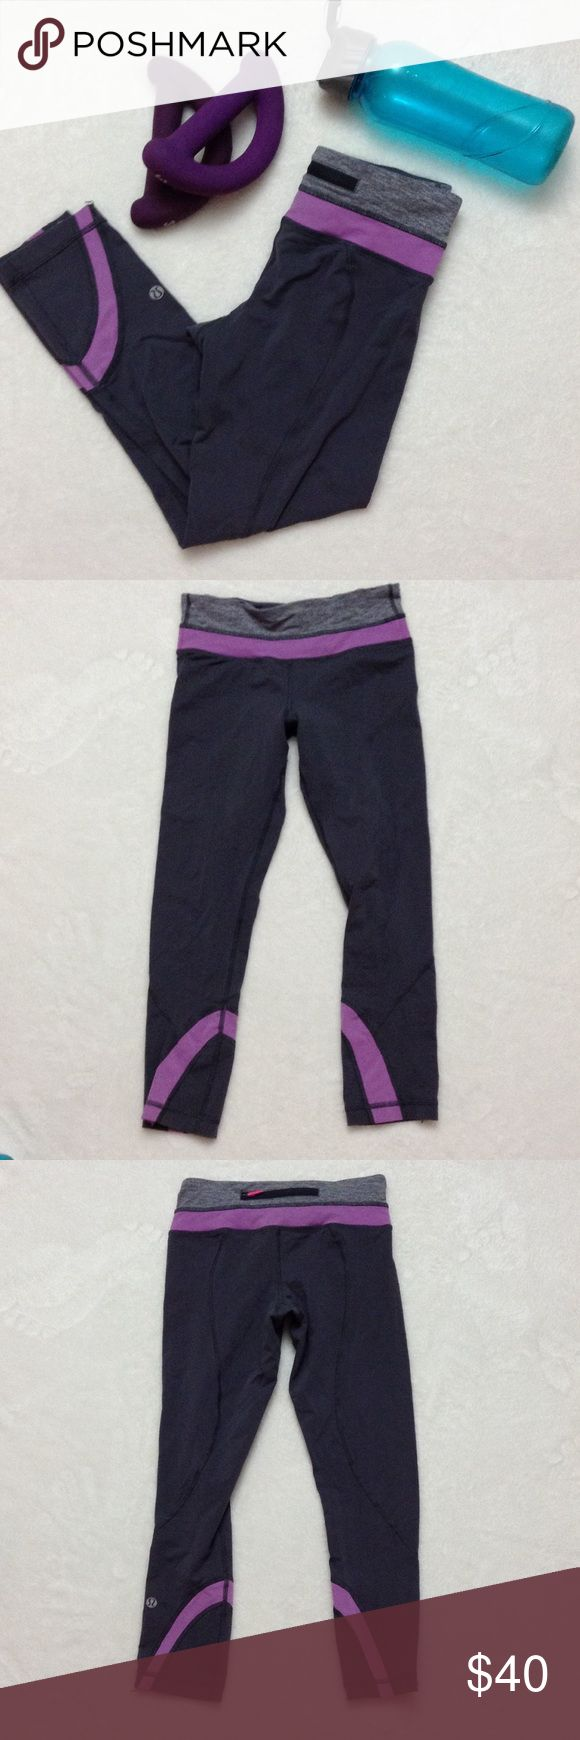 LULULEMON Gray Purple Yoga Crop Skinnies Pants LULULEMON Gray Purple Yoga Crop Skinnies Pants, size 4. Light piling and light cracking on logo but still in good condition. lululemon athletica Pants Ankle & Cropped